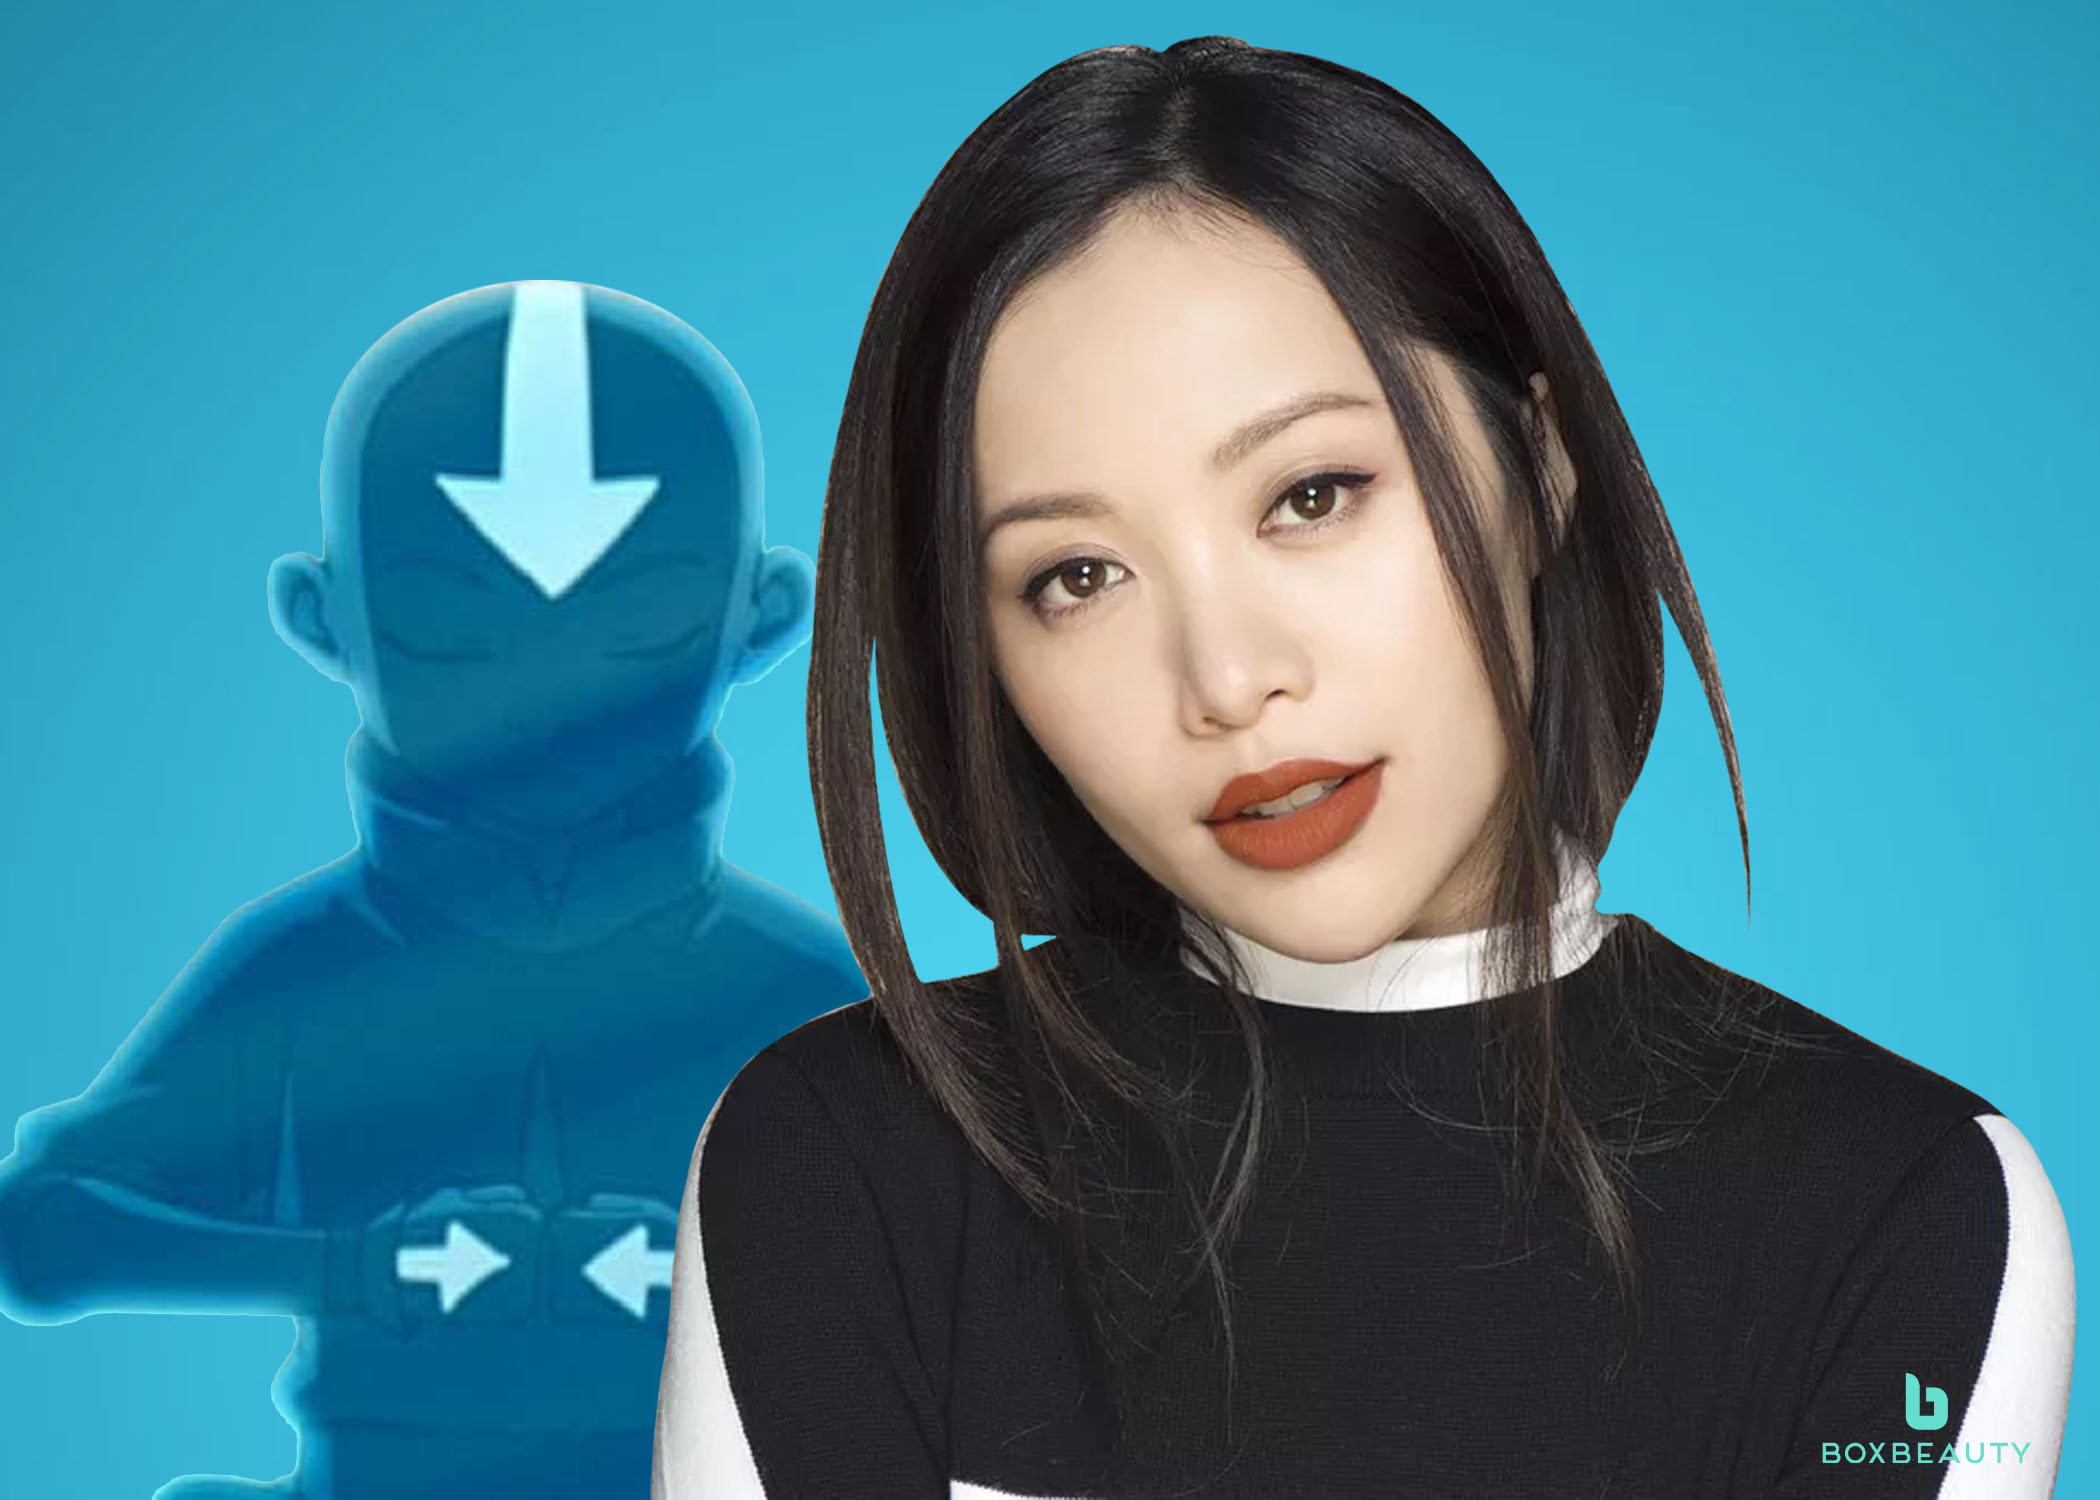 Has Michelle Phan Returned to Save The Beauty Community?